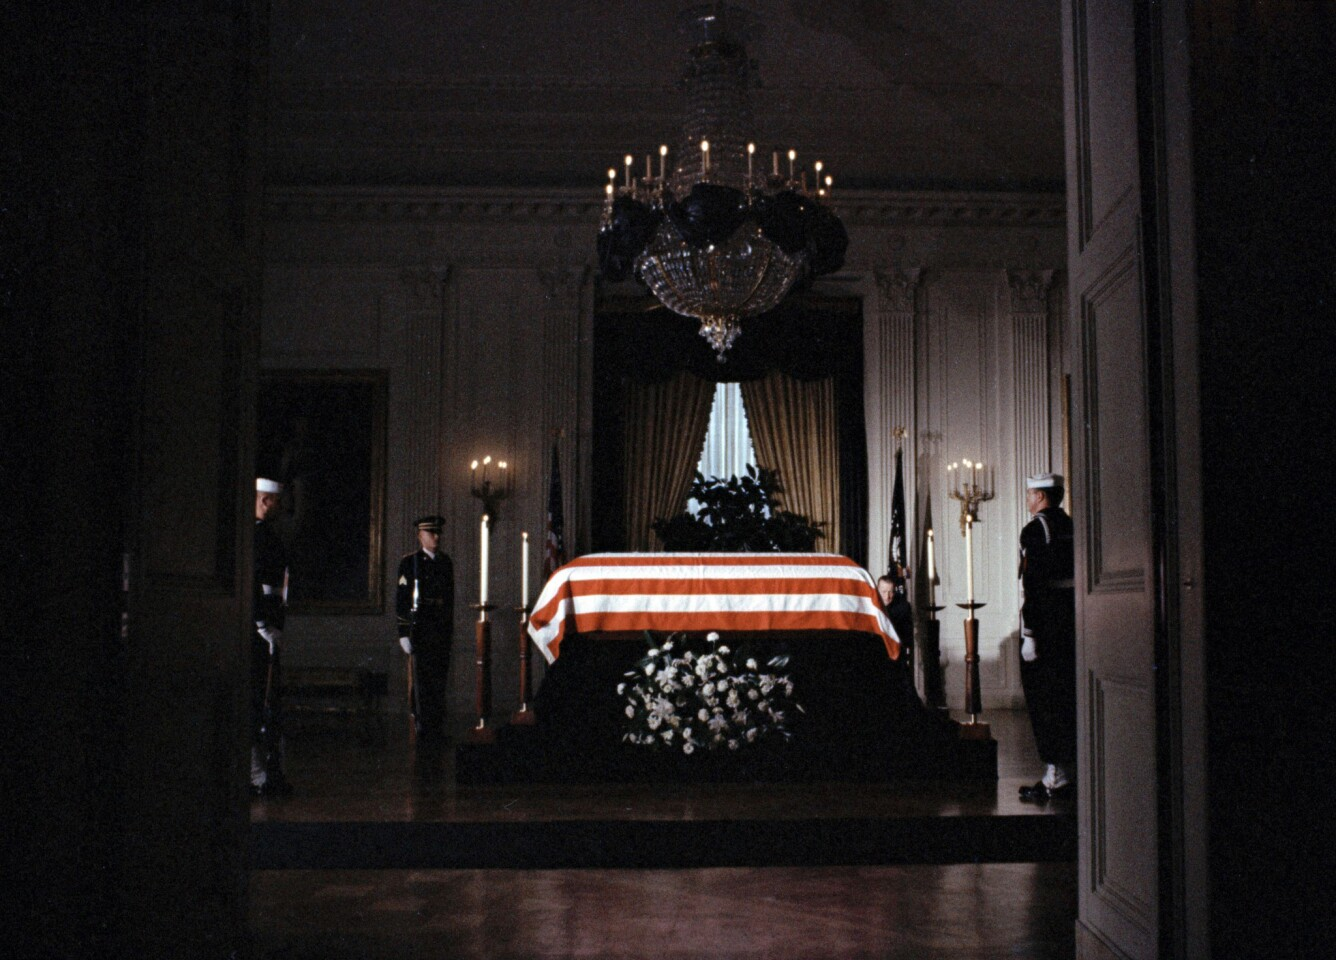 The flag-draped casket of President John F. Kennedy lies in state in the East Room of the White House in Washington.